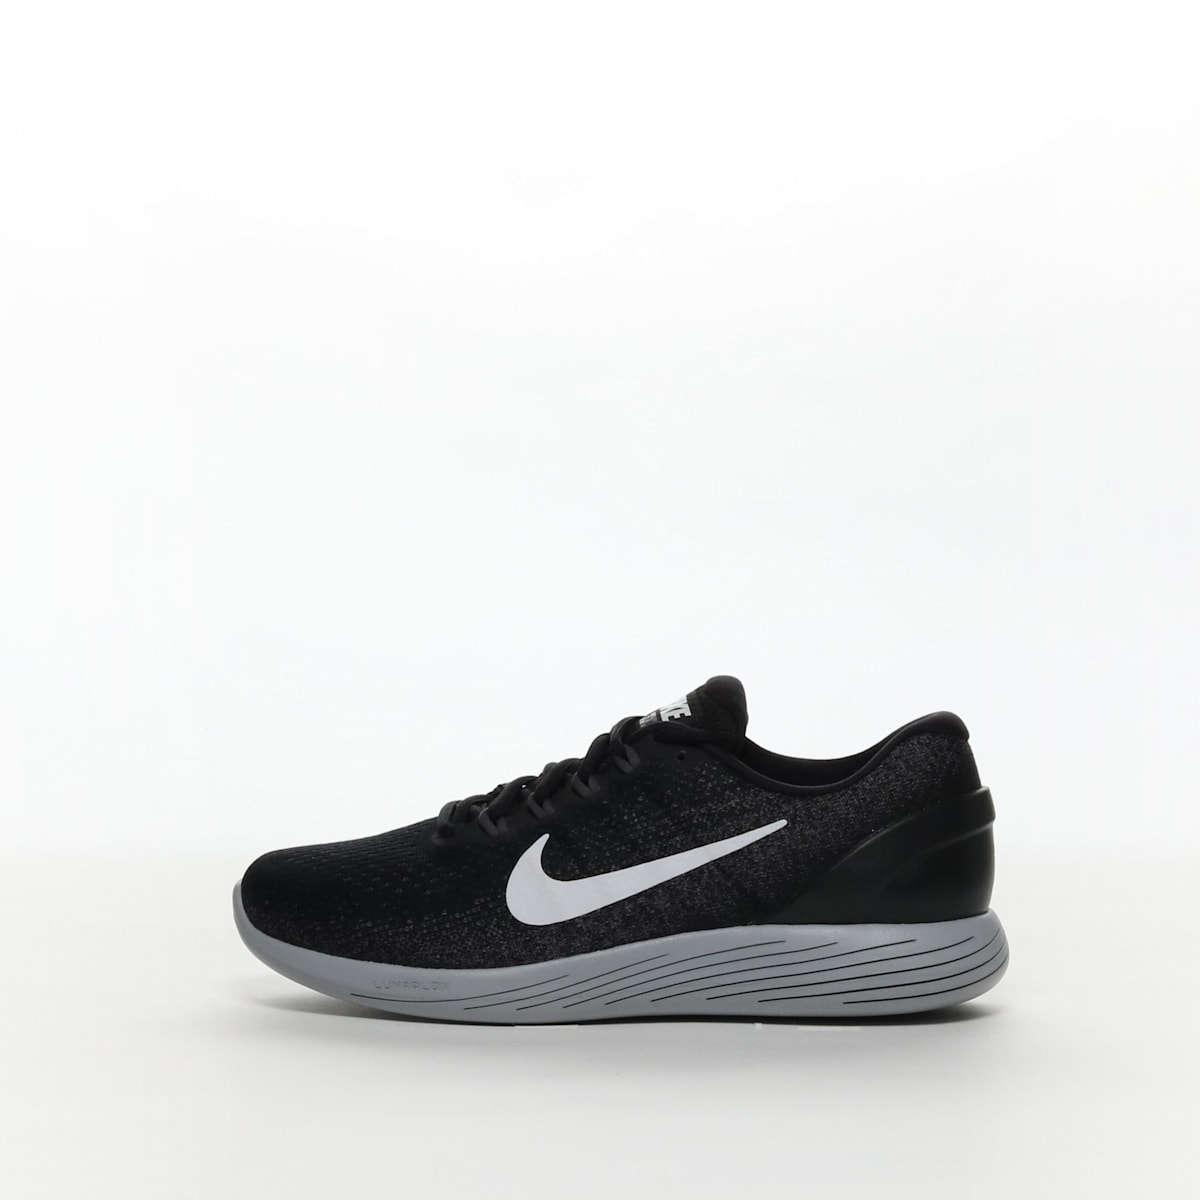 huge selection of 031e2 23c11 ... NIKE LUNARGLIDE 9. Actual Shoe